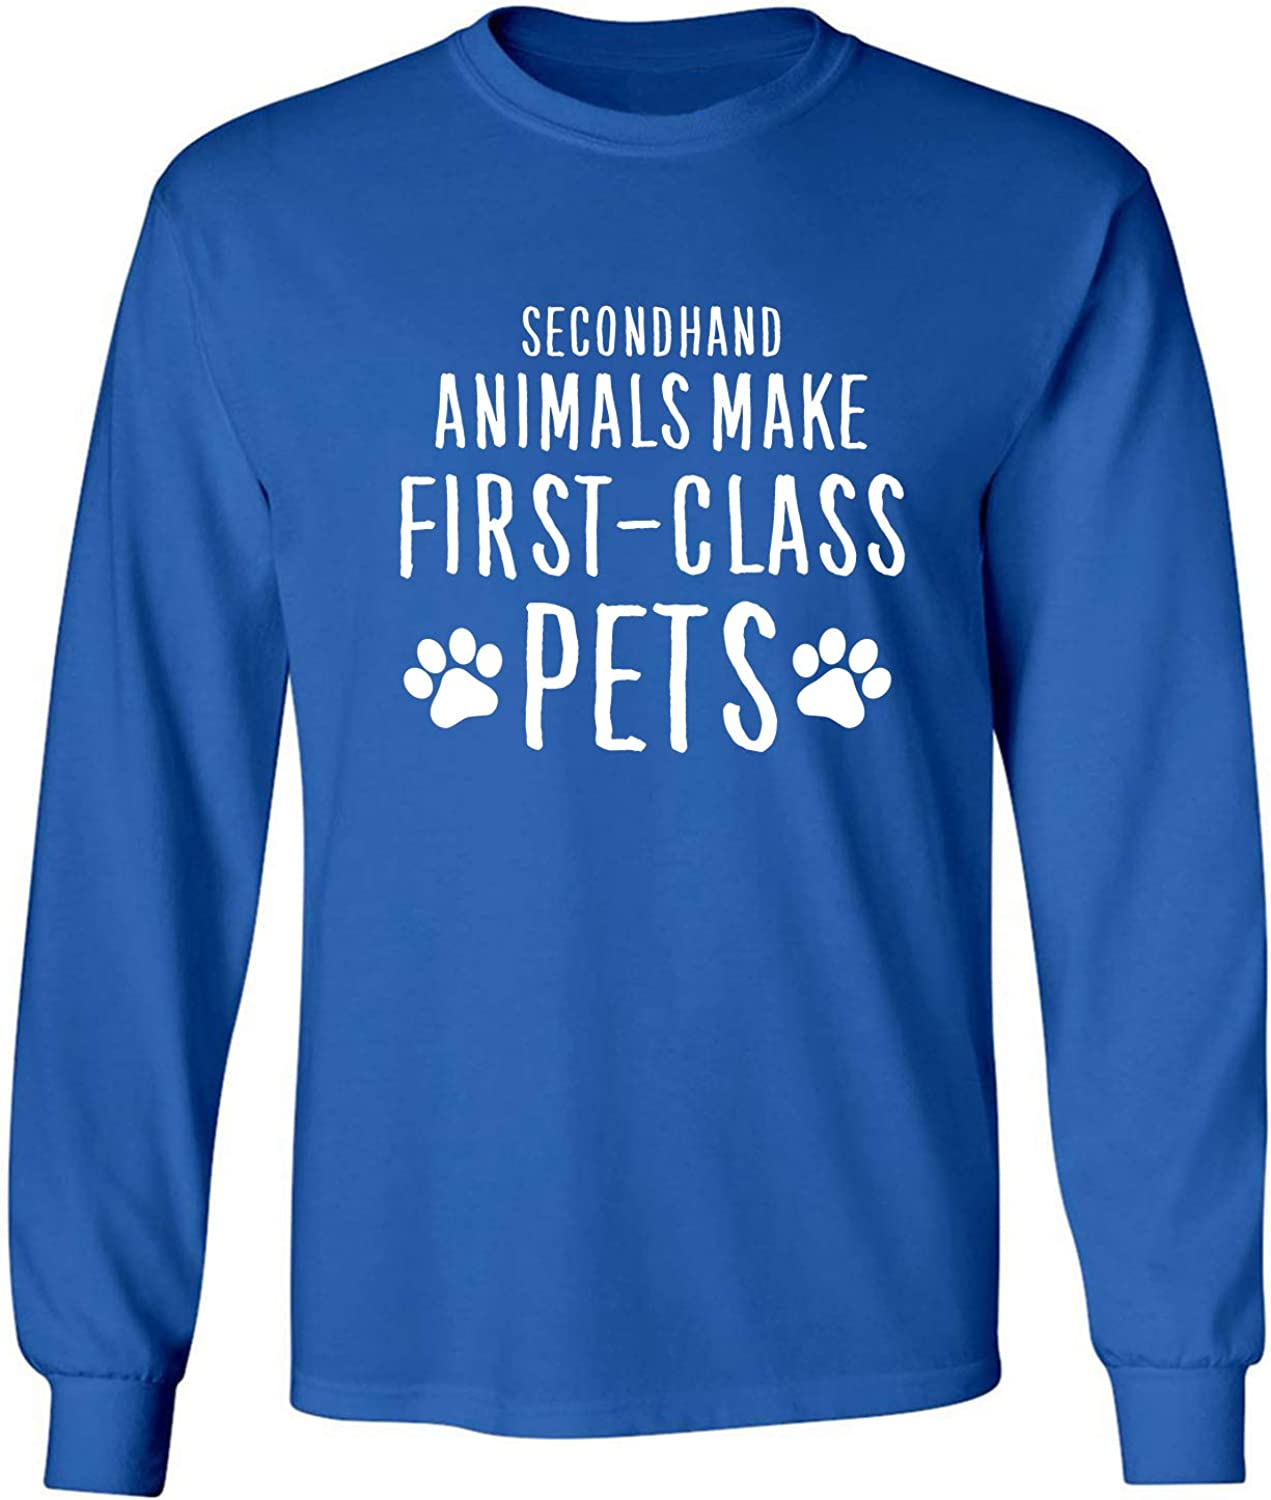 Secondhand Animals Adult Long Sleeve T-Shirt in Royal - XXXXX-Large